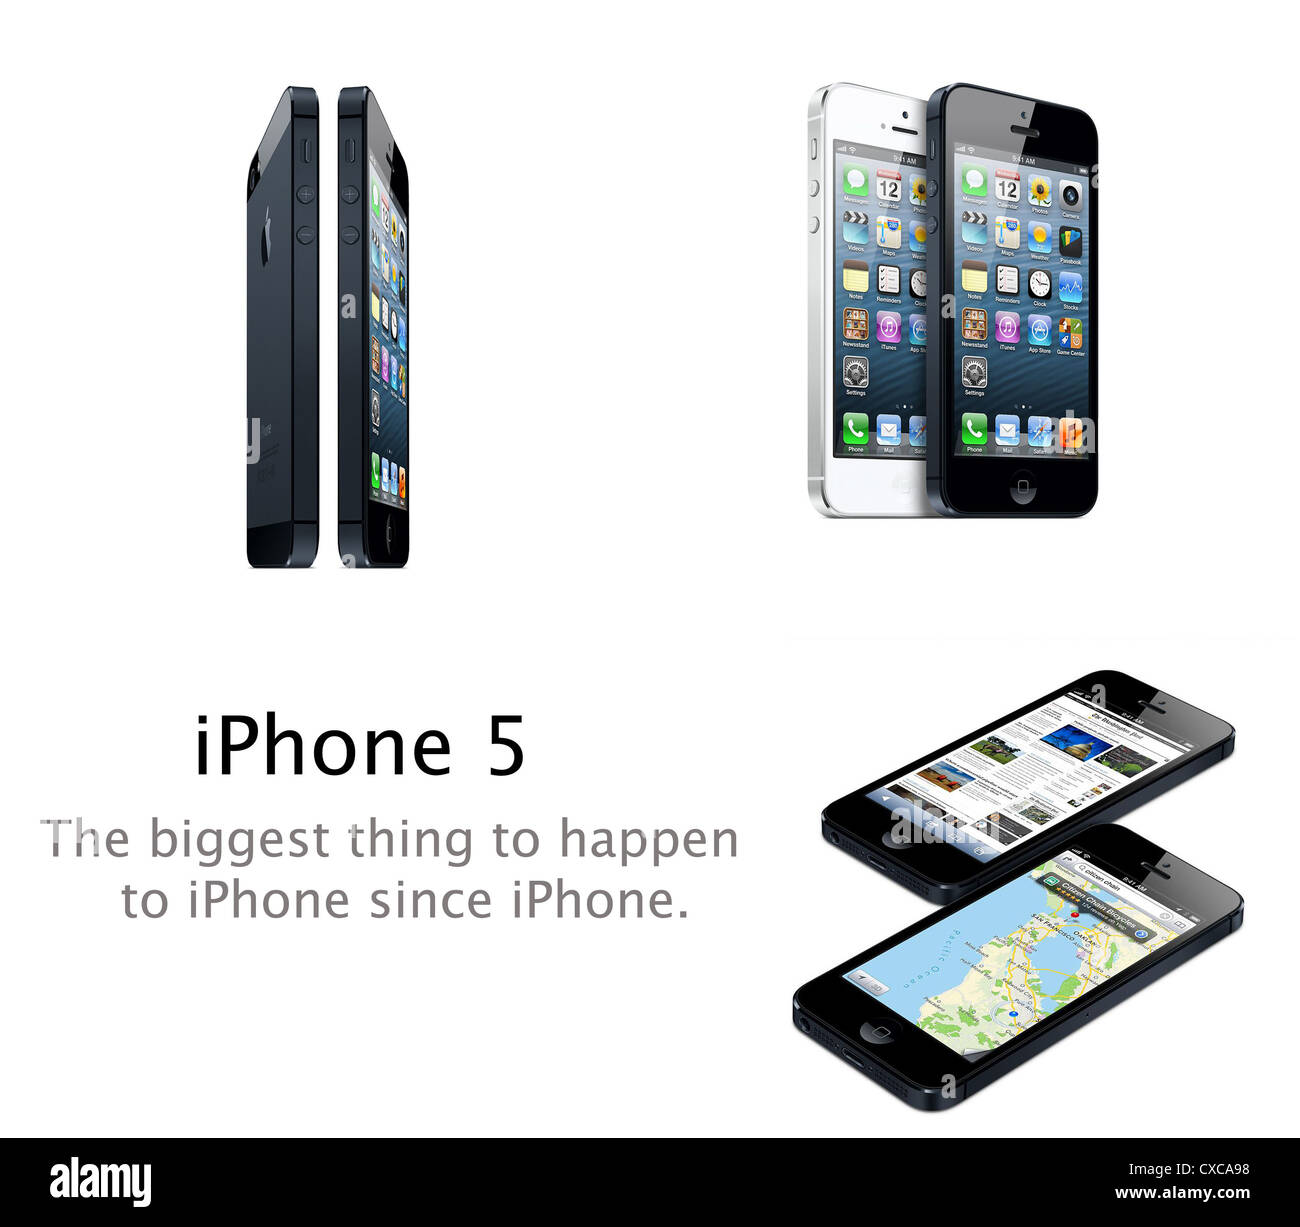 Images of Apple iPhone 5 mobile phone advertisement Stock Photo